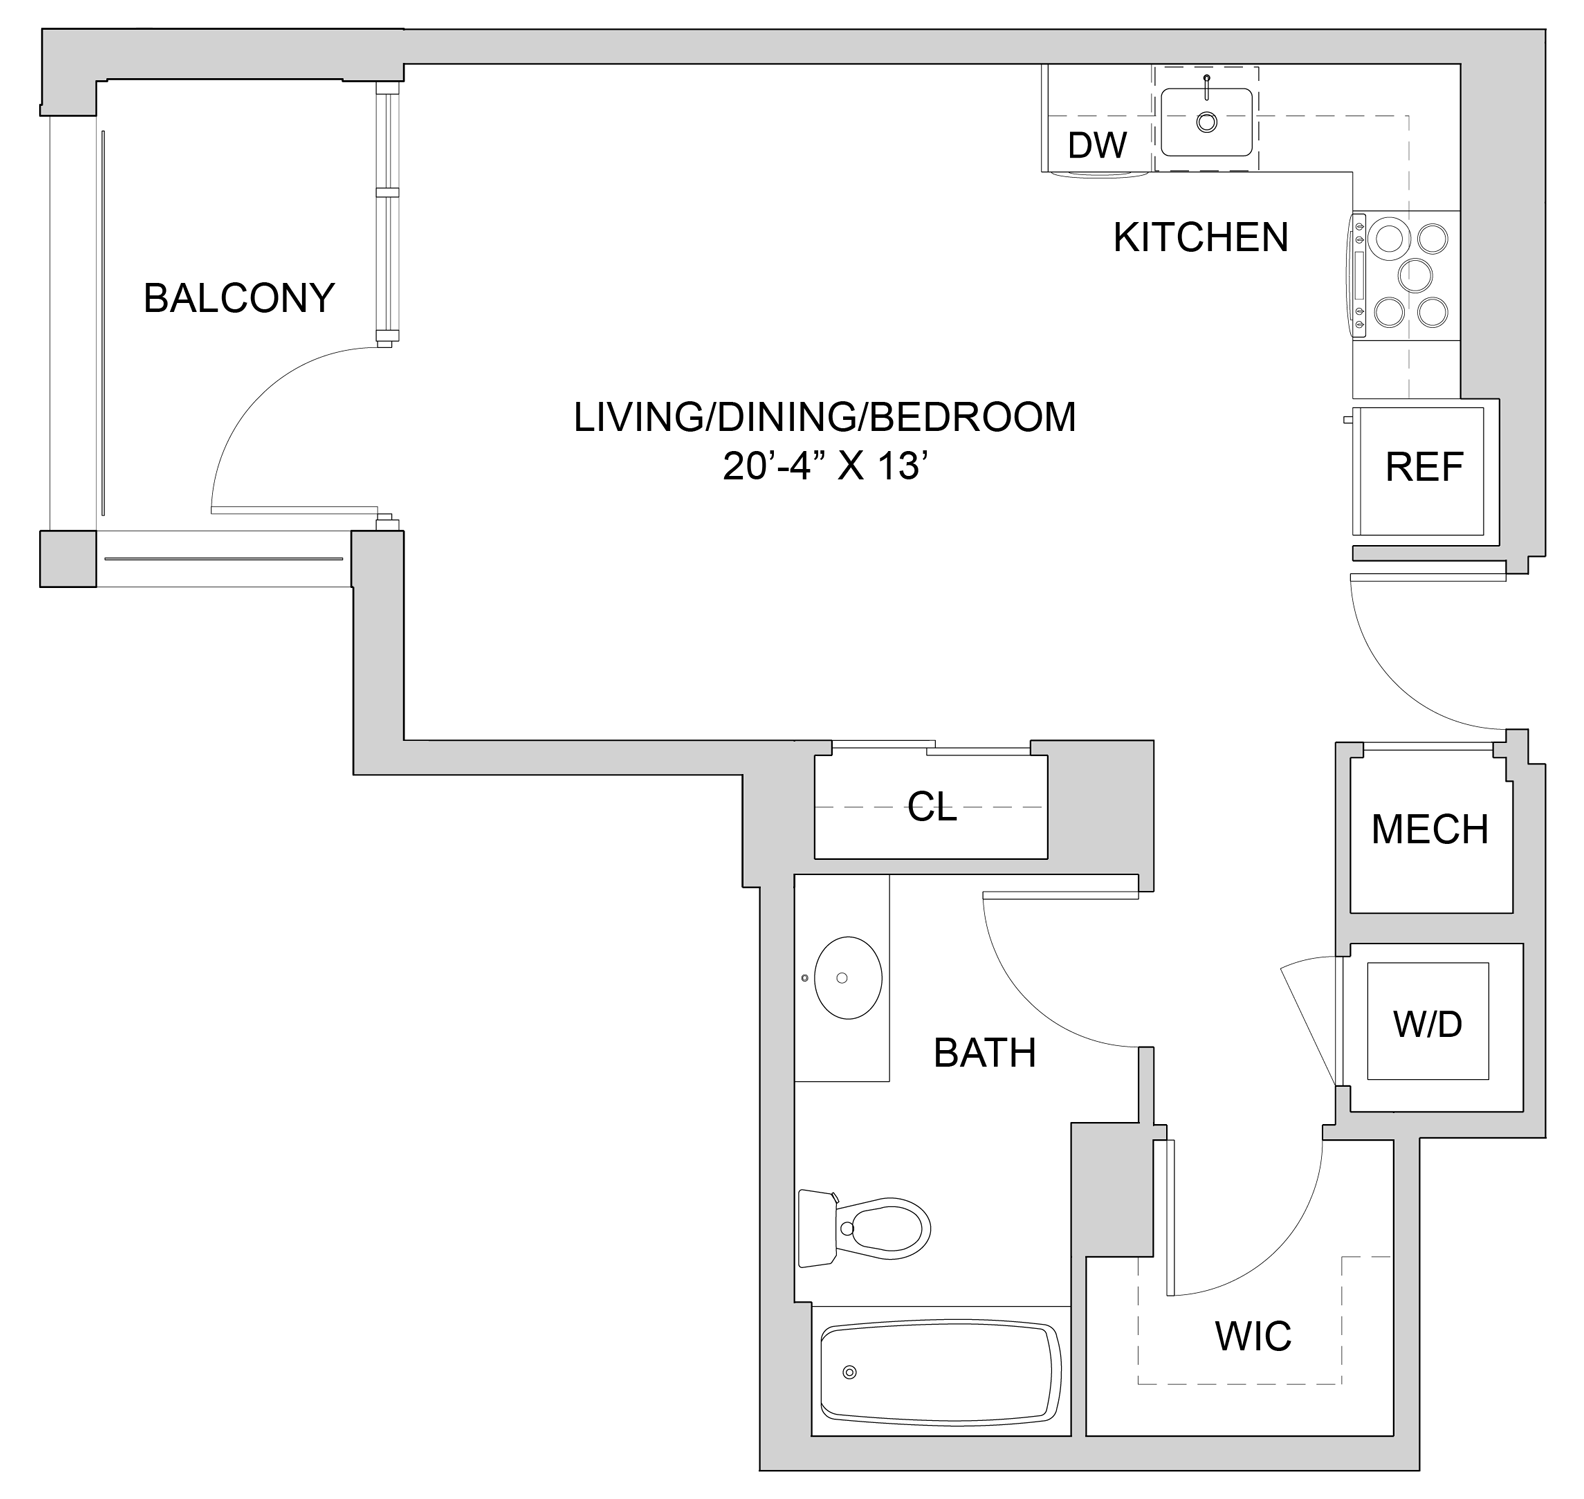 Floorplan N212 Image enlarged